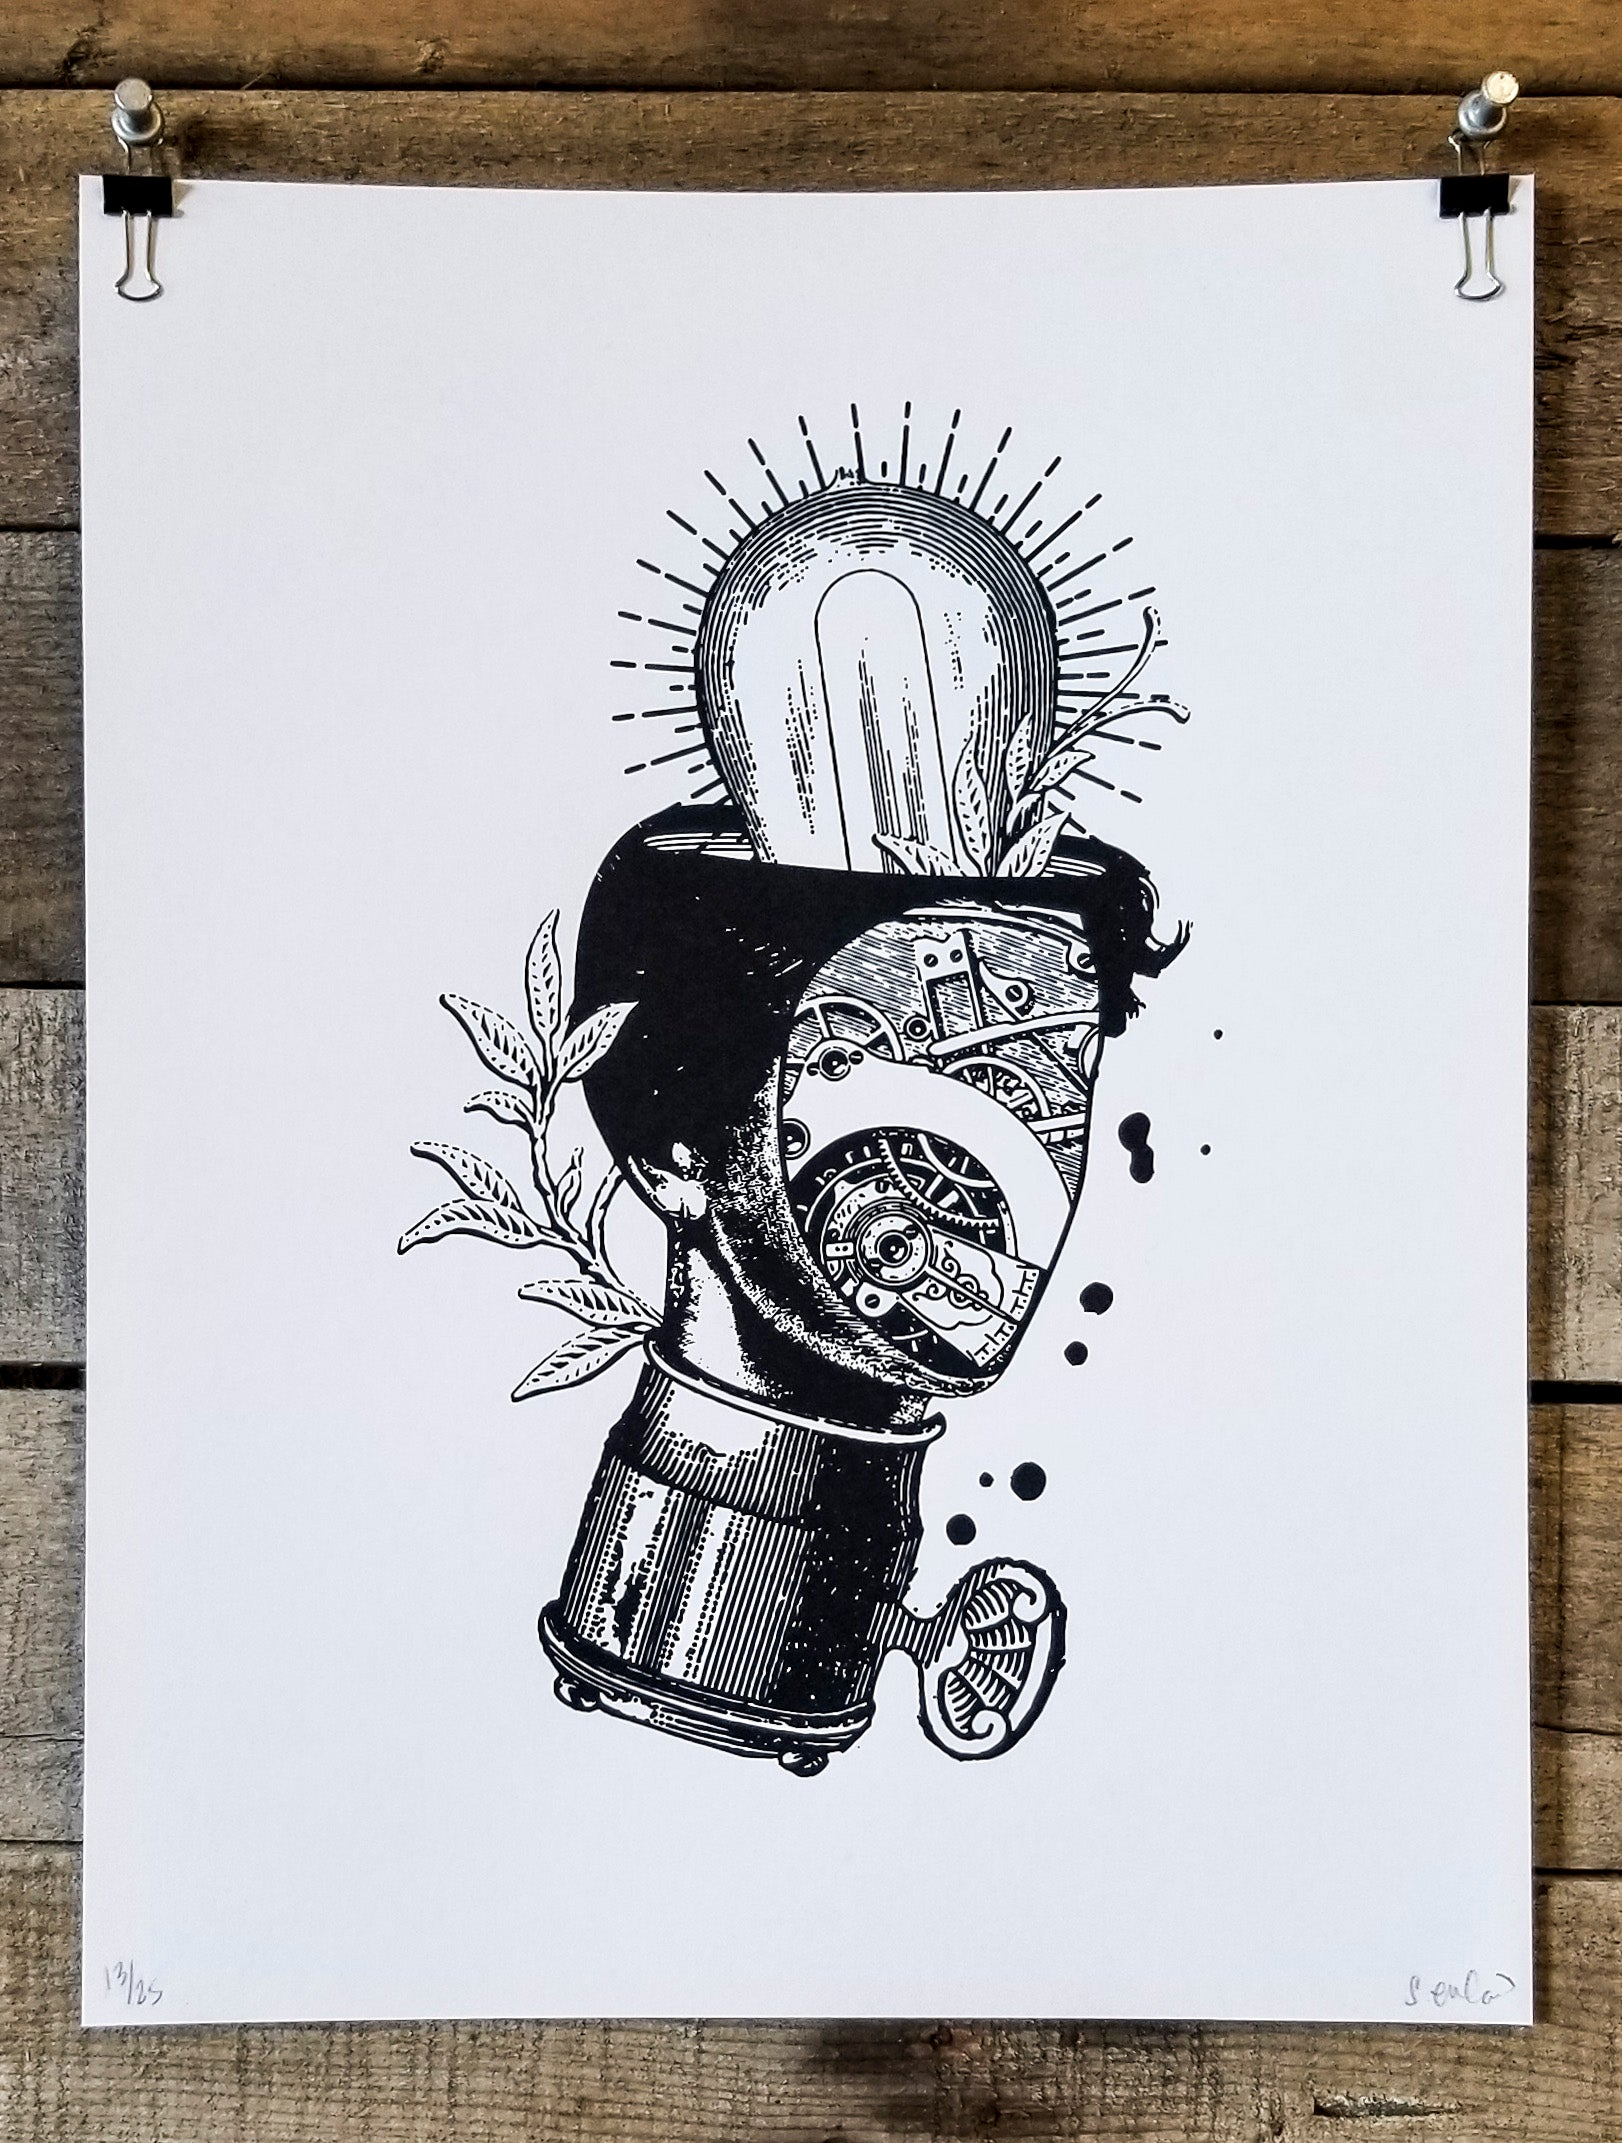 SE Light Gears · 11x14 Print